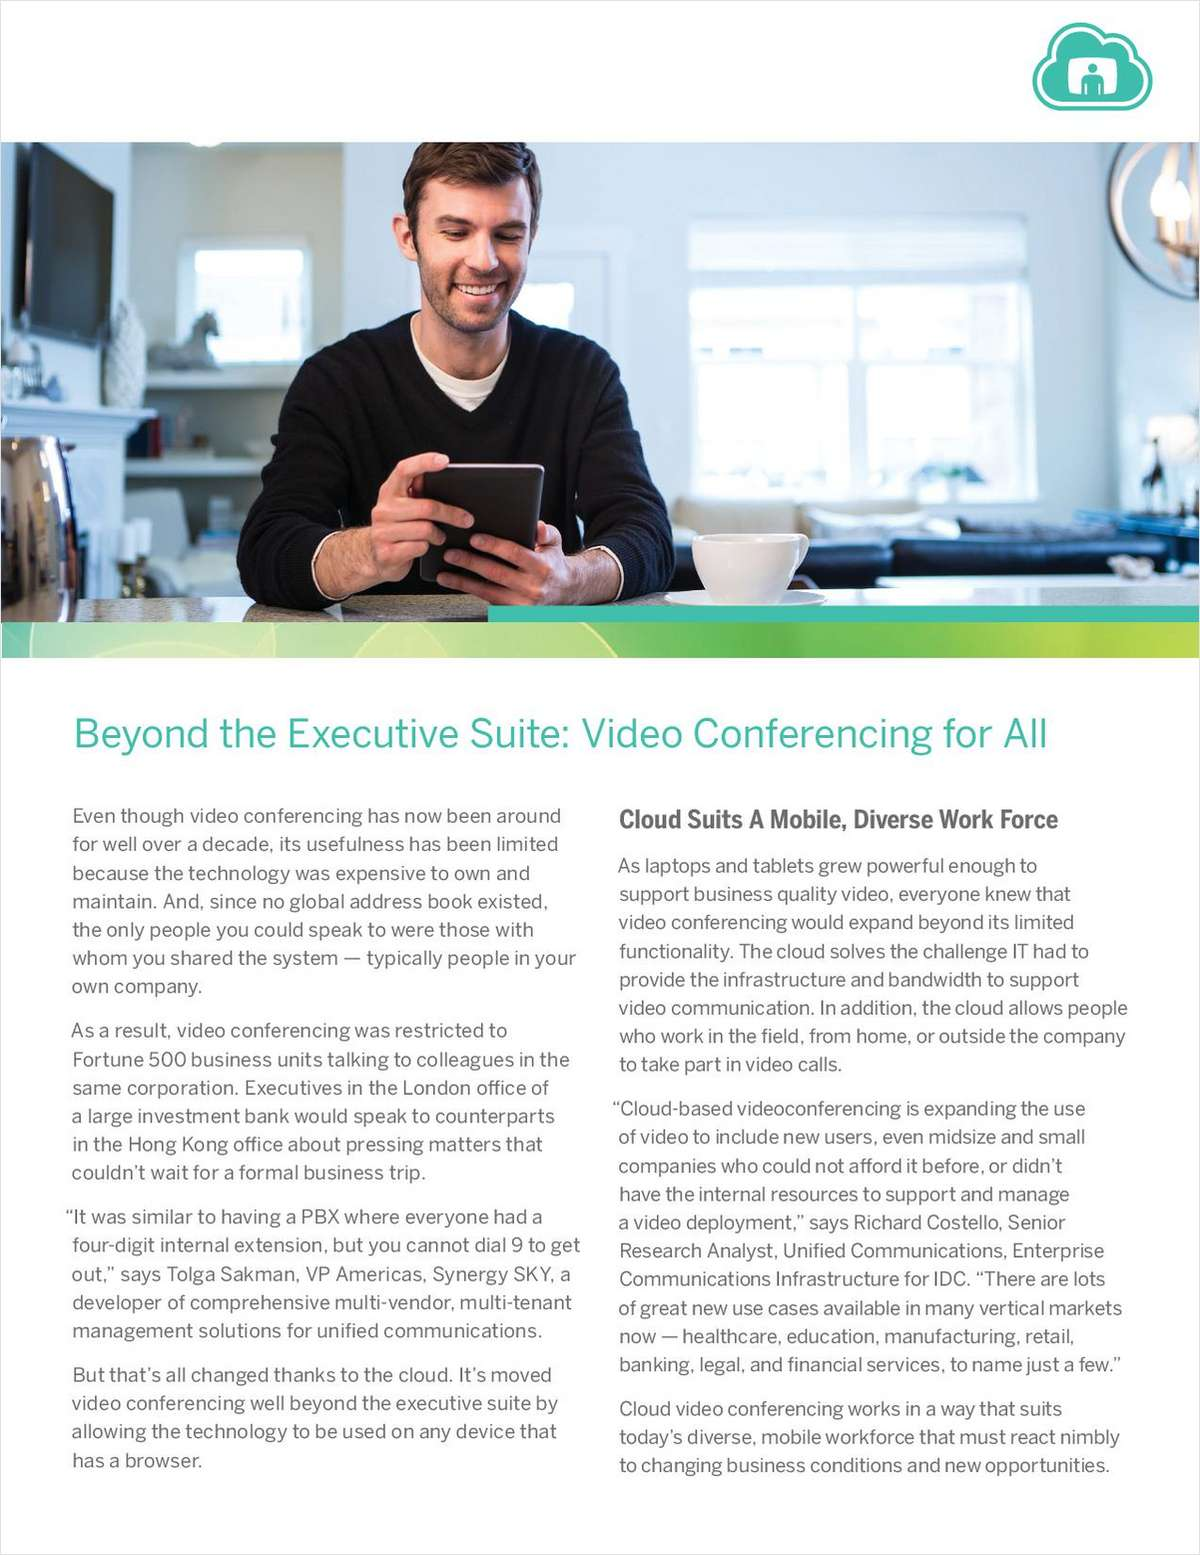 Beyond the Executive Suite: Video Conferencing for All